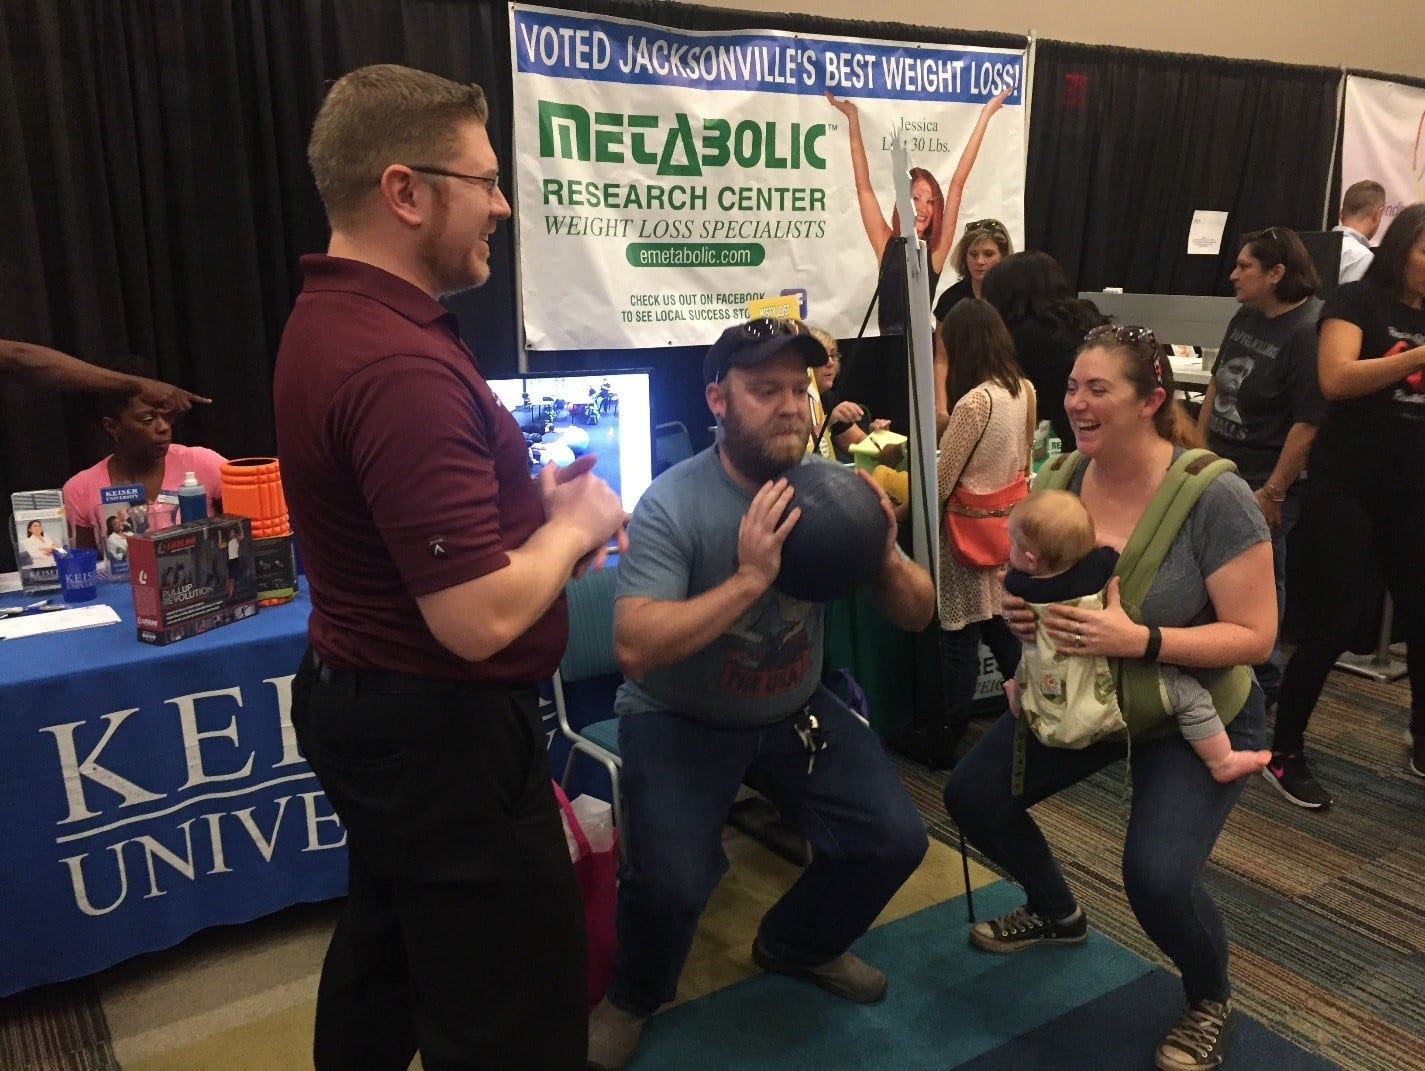 Representatives from the Jacksonville Campus Attend the 'Jax Health & Fitness Expo'